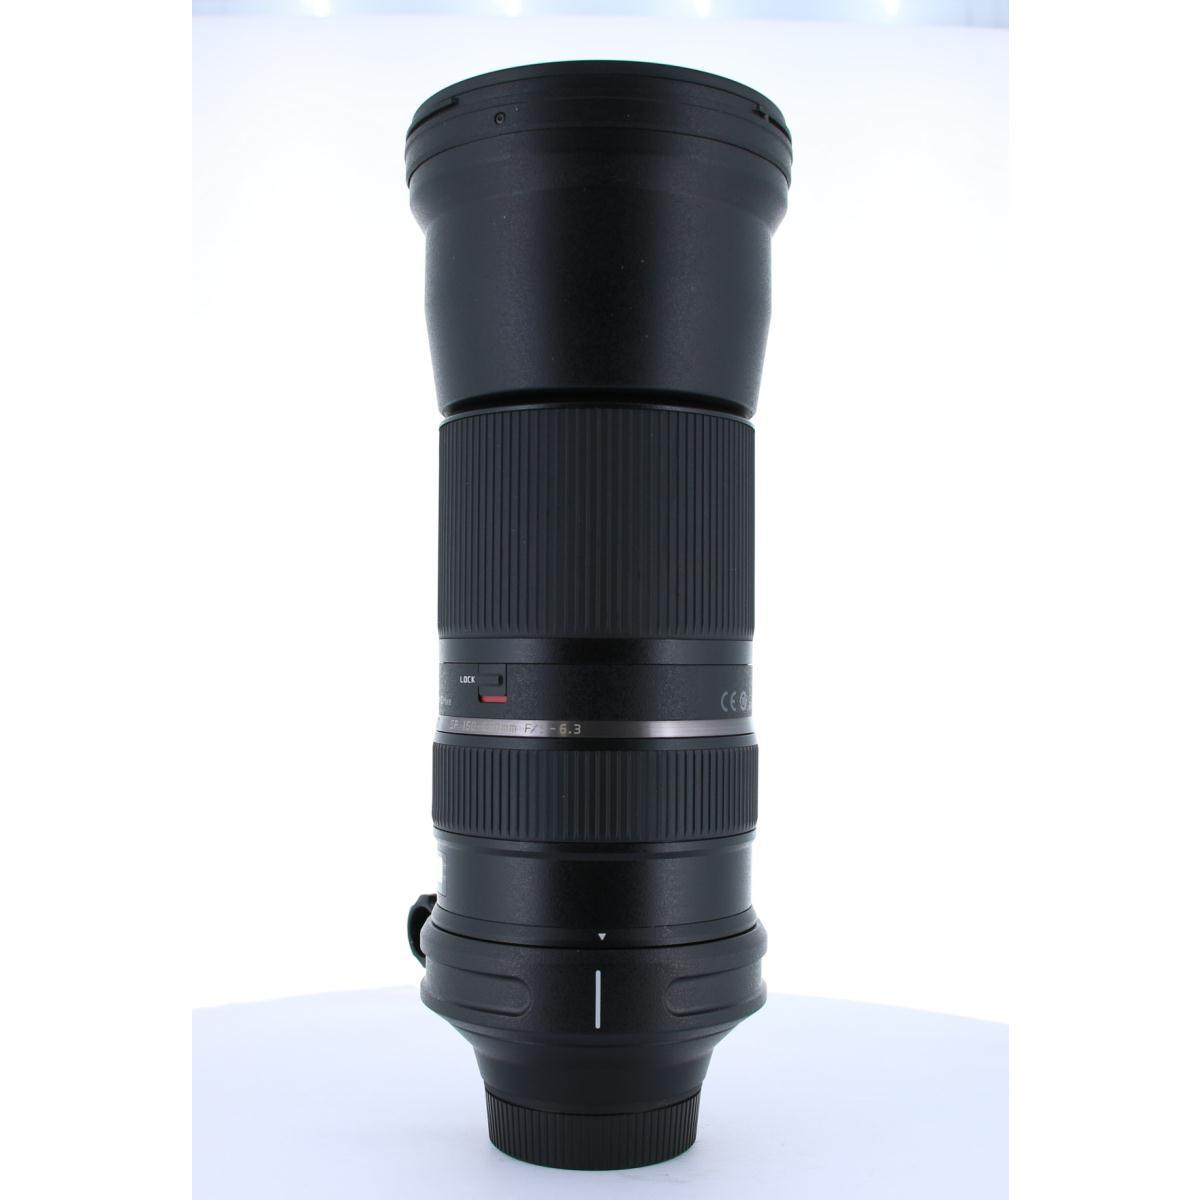 TAMRON ニコン150-600mm F5-6.3VC(A011)【中古】